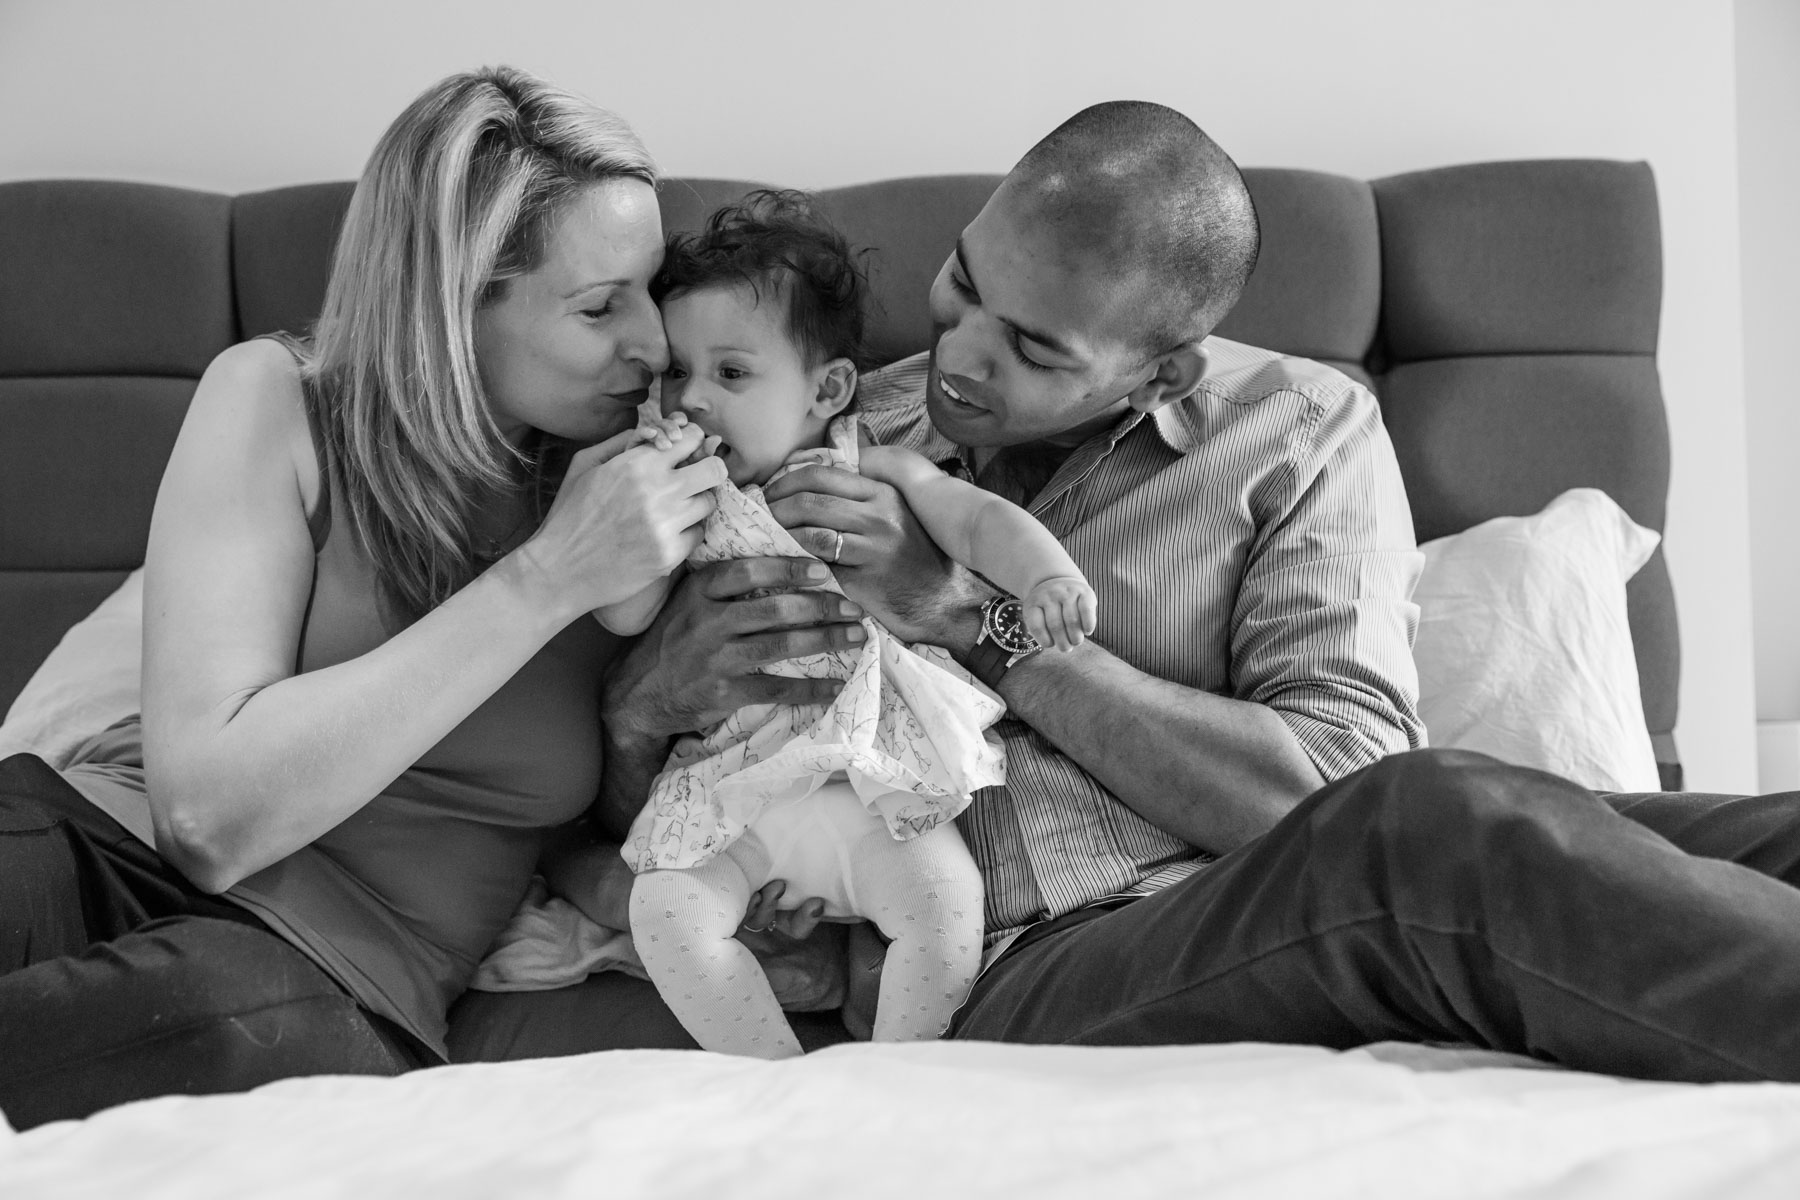 Southwark Family Photography by London Family Photographer Richard Murgatroyd